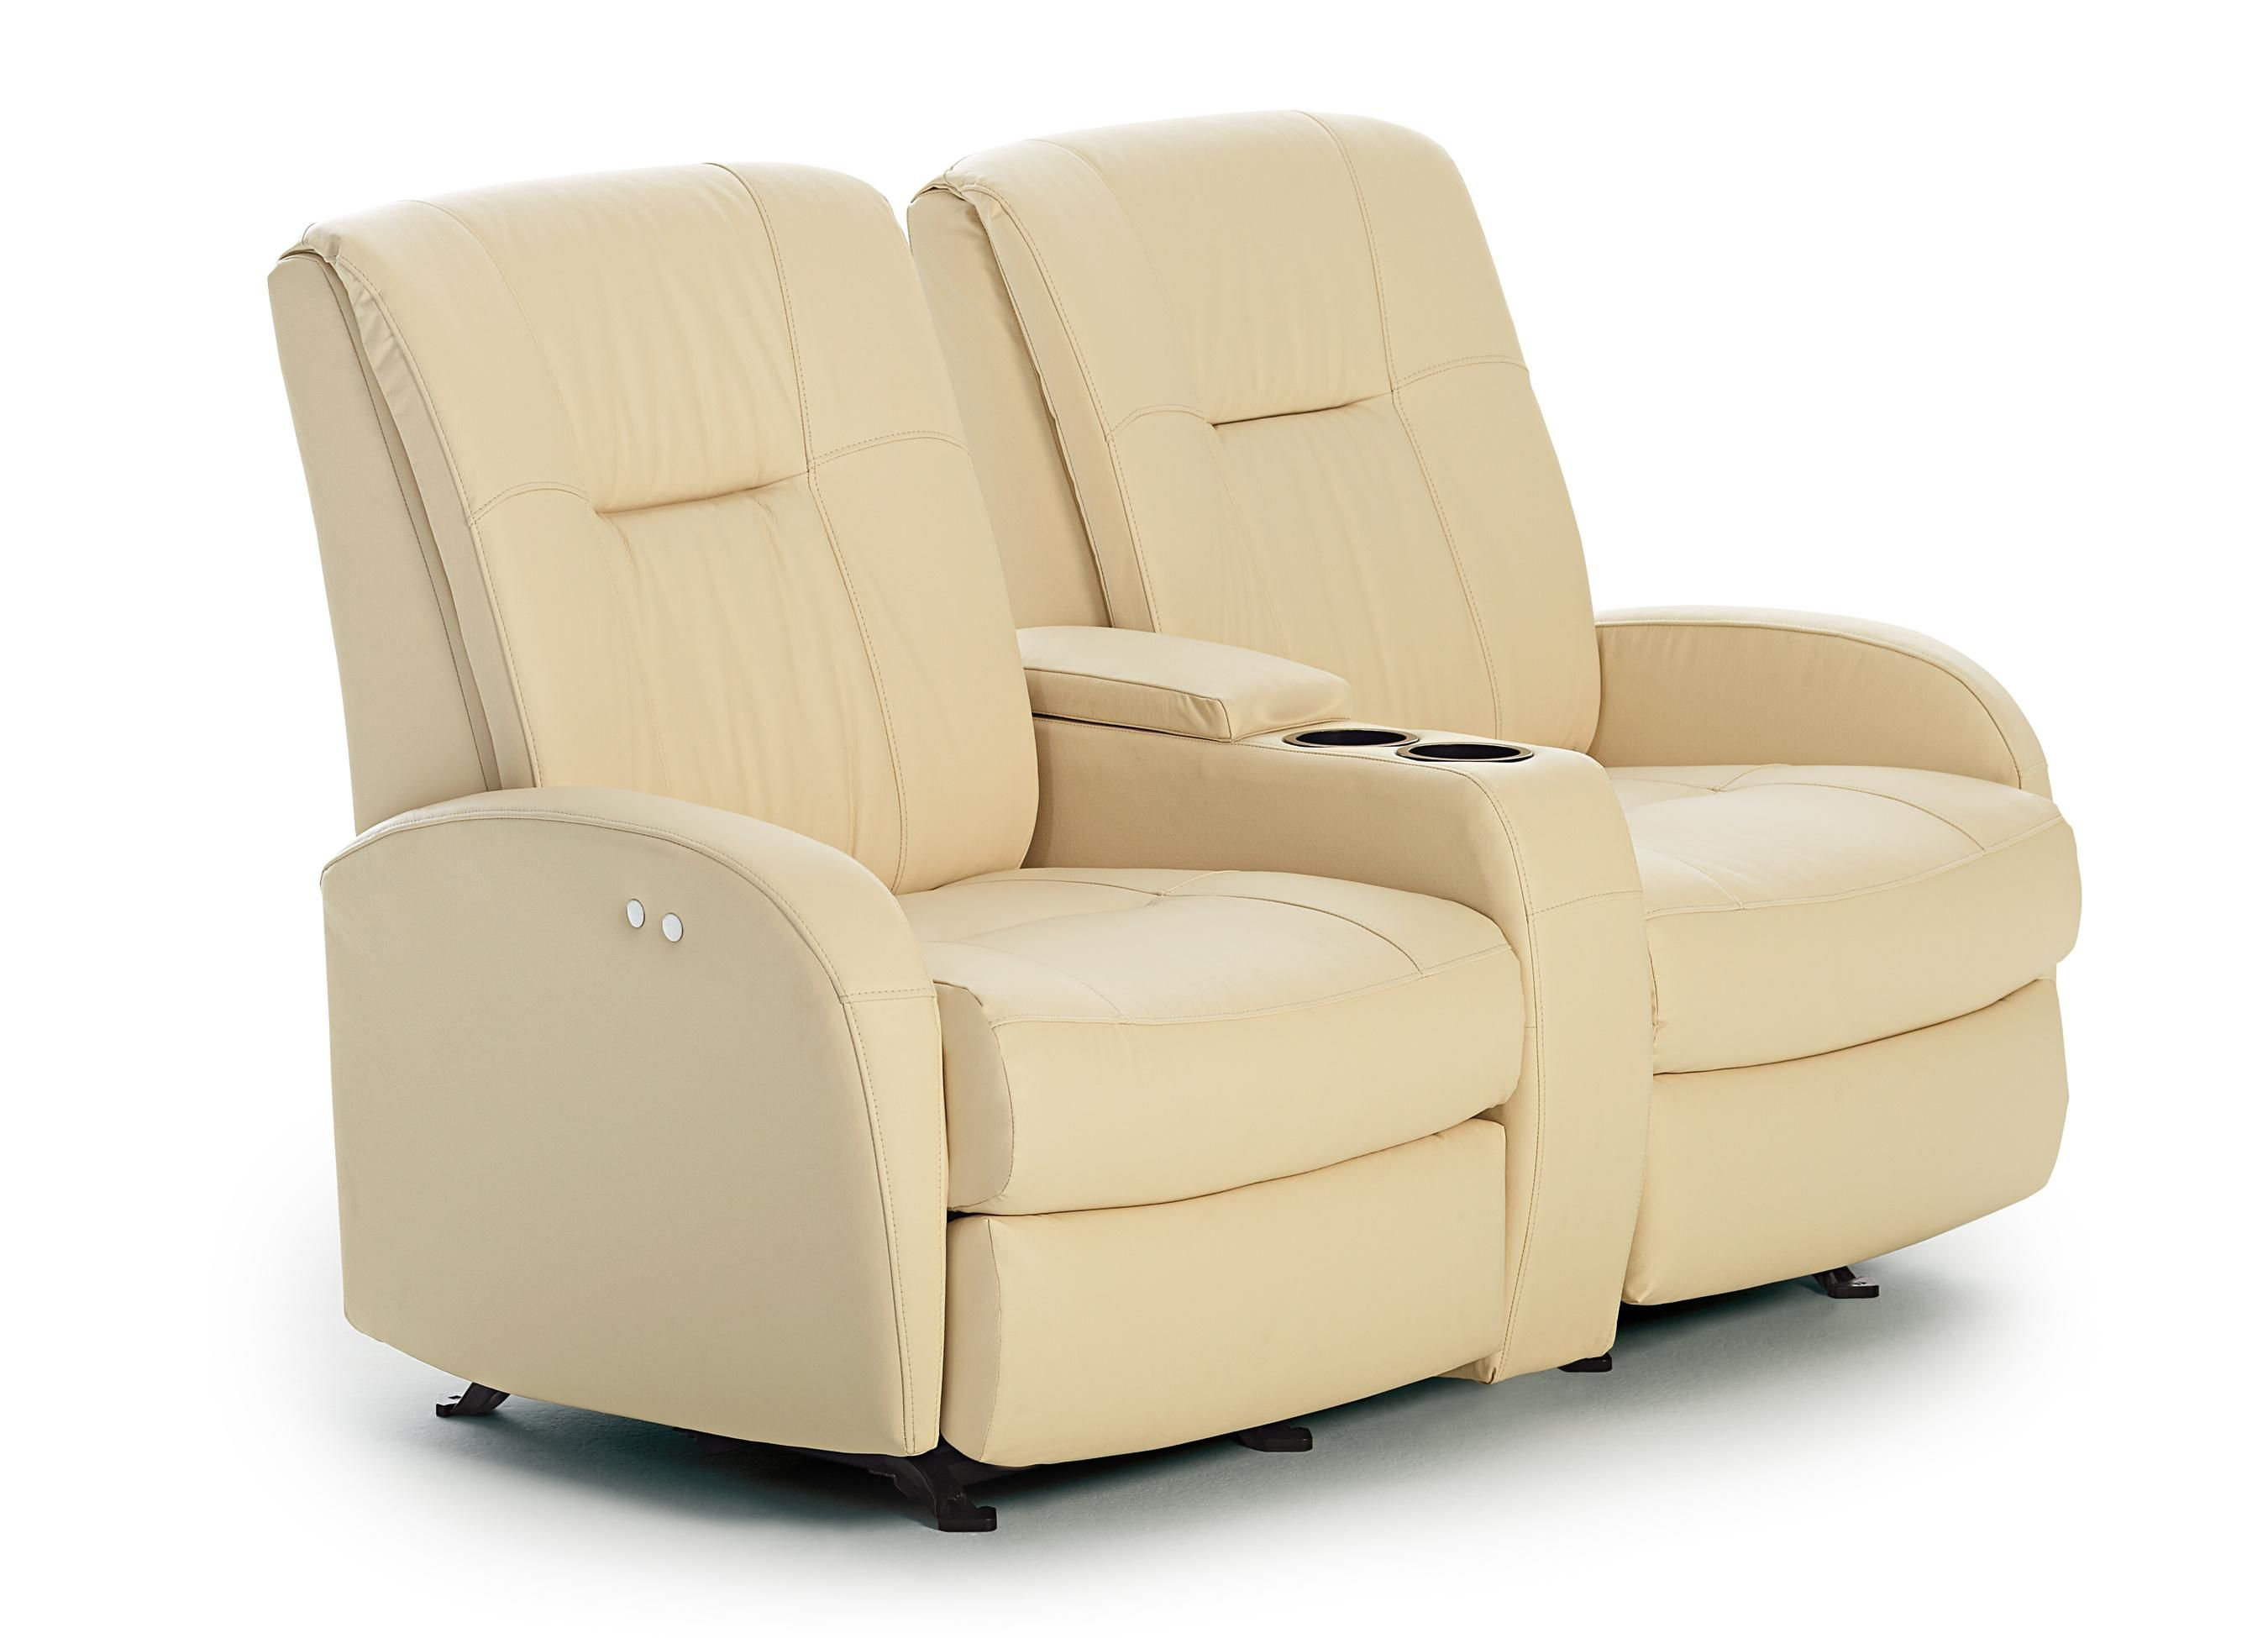 Remarkable Reclining Loveseat With Console Ruddick Contemporary Space Saver Power Reclining Loveseat With Console  sc 1 st  Pinterest & Remarkable Reclining Loveseat With Console: Ruddick Contemporary ... islam-shia.org